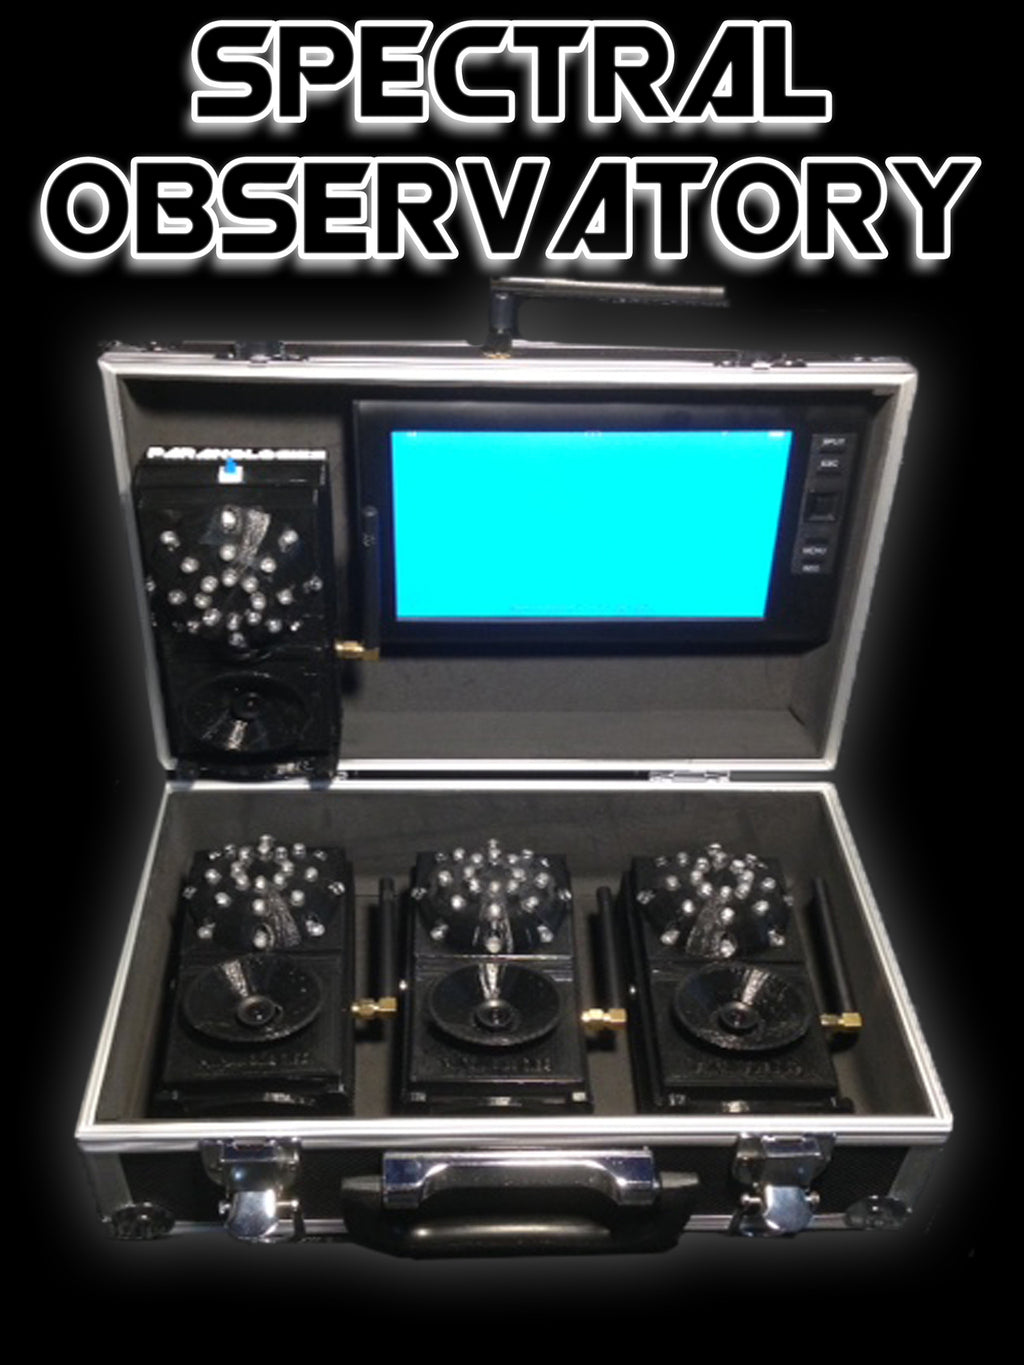 Wireless Spectral Observatory 4 Channel DVR System